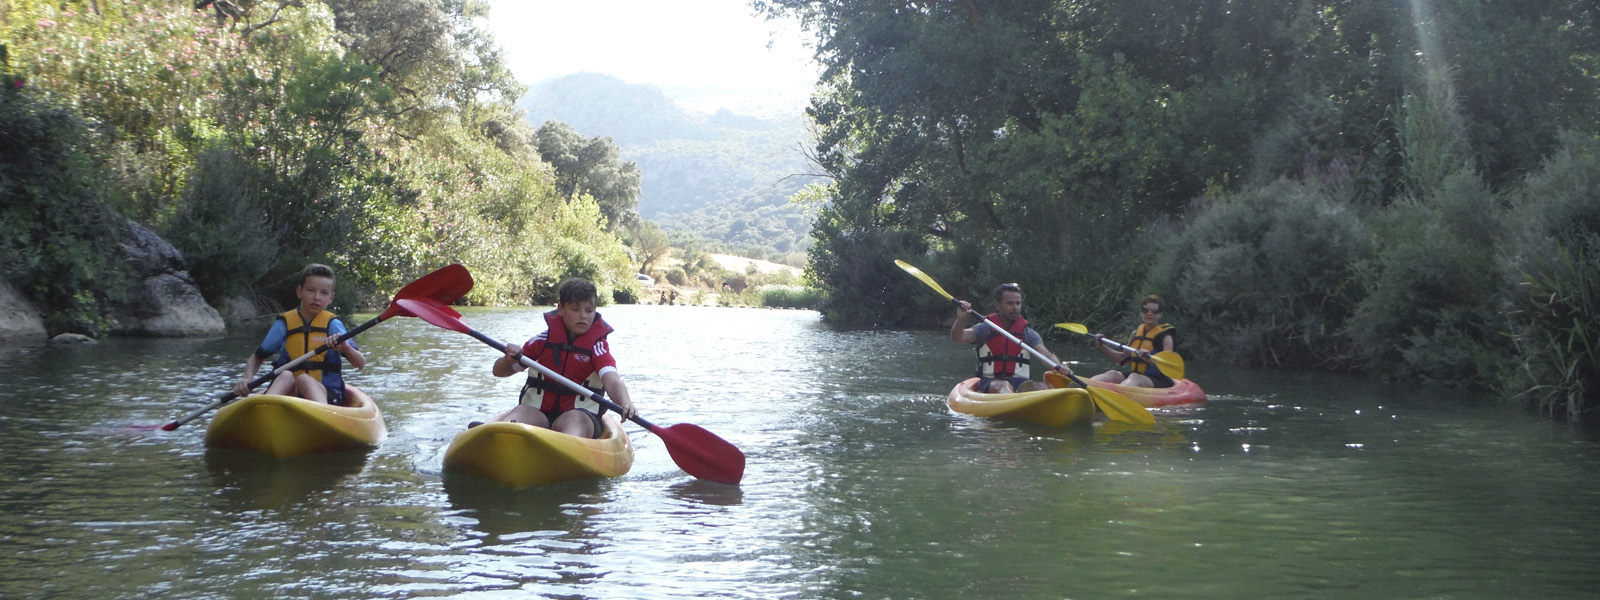 Ofertas especiales Descenso en Kayak Malaga